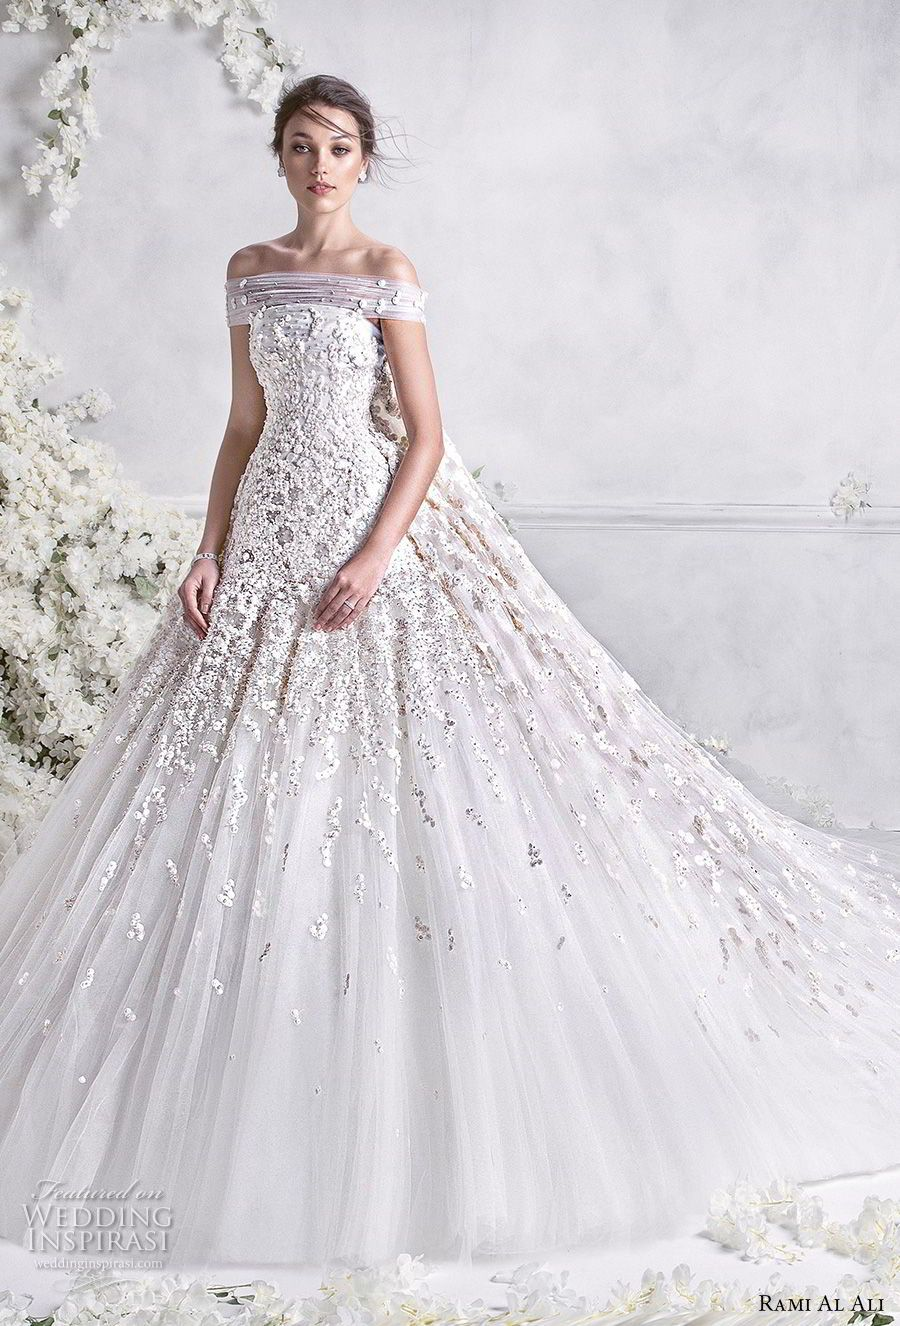 Rami al ali wedding dresses ball gowns bodice and neckline